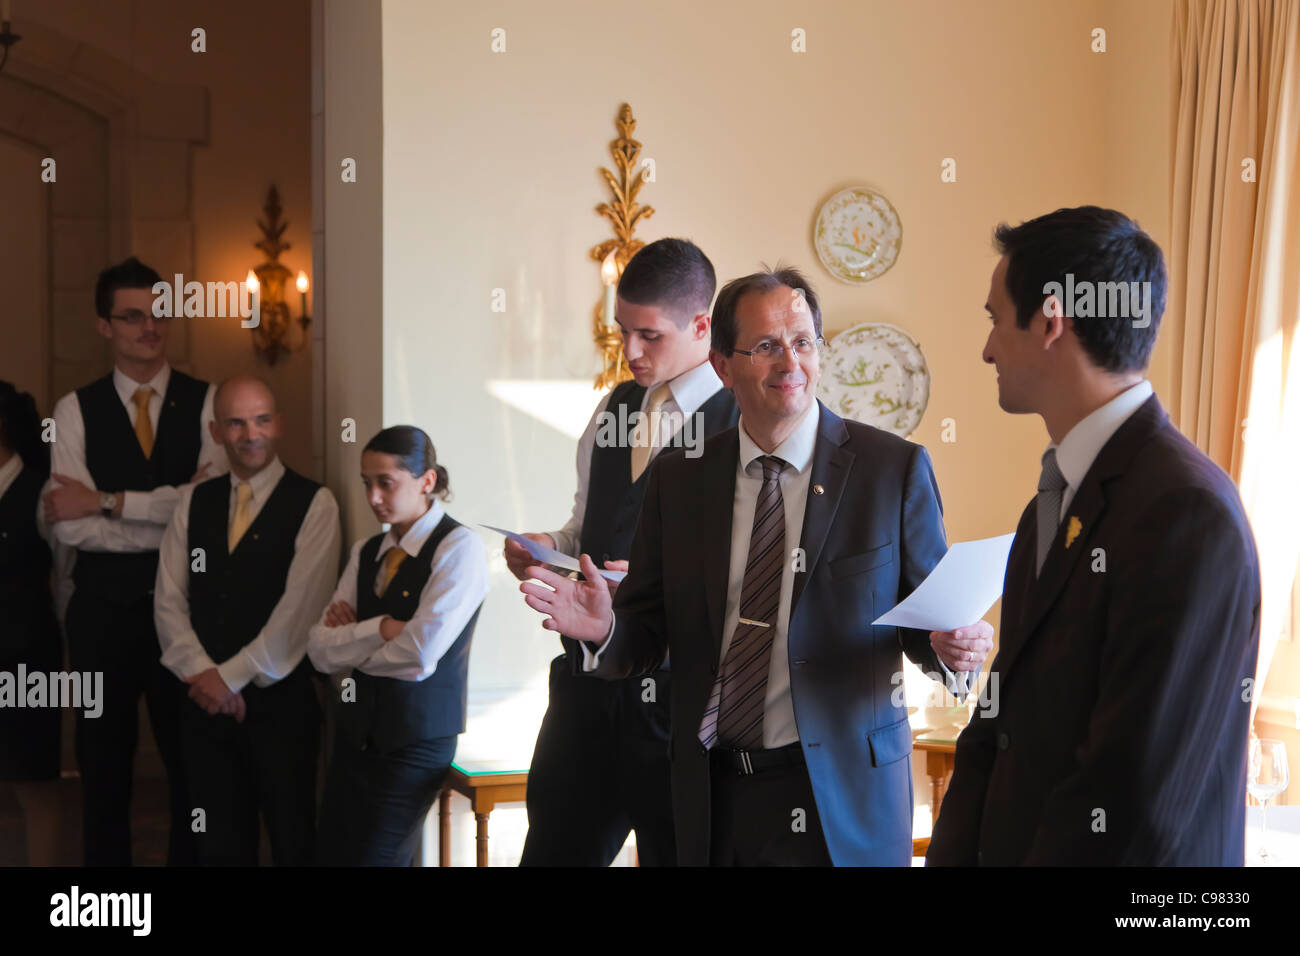 Meeting between the brigade system and the rest of the Staff., CHATEAU SAINT-MARTIN & SPA - 2490 Avenue des - Stock Image